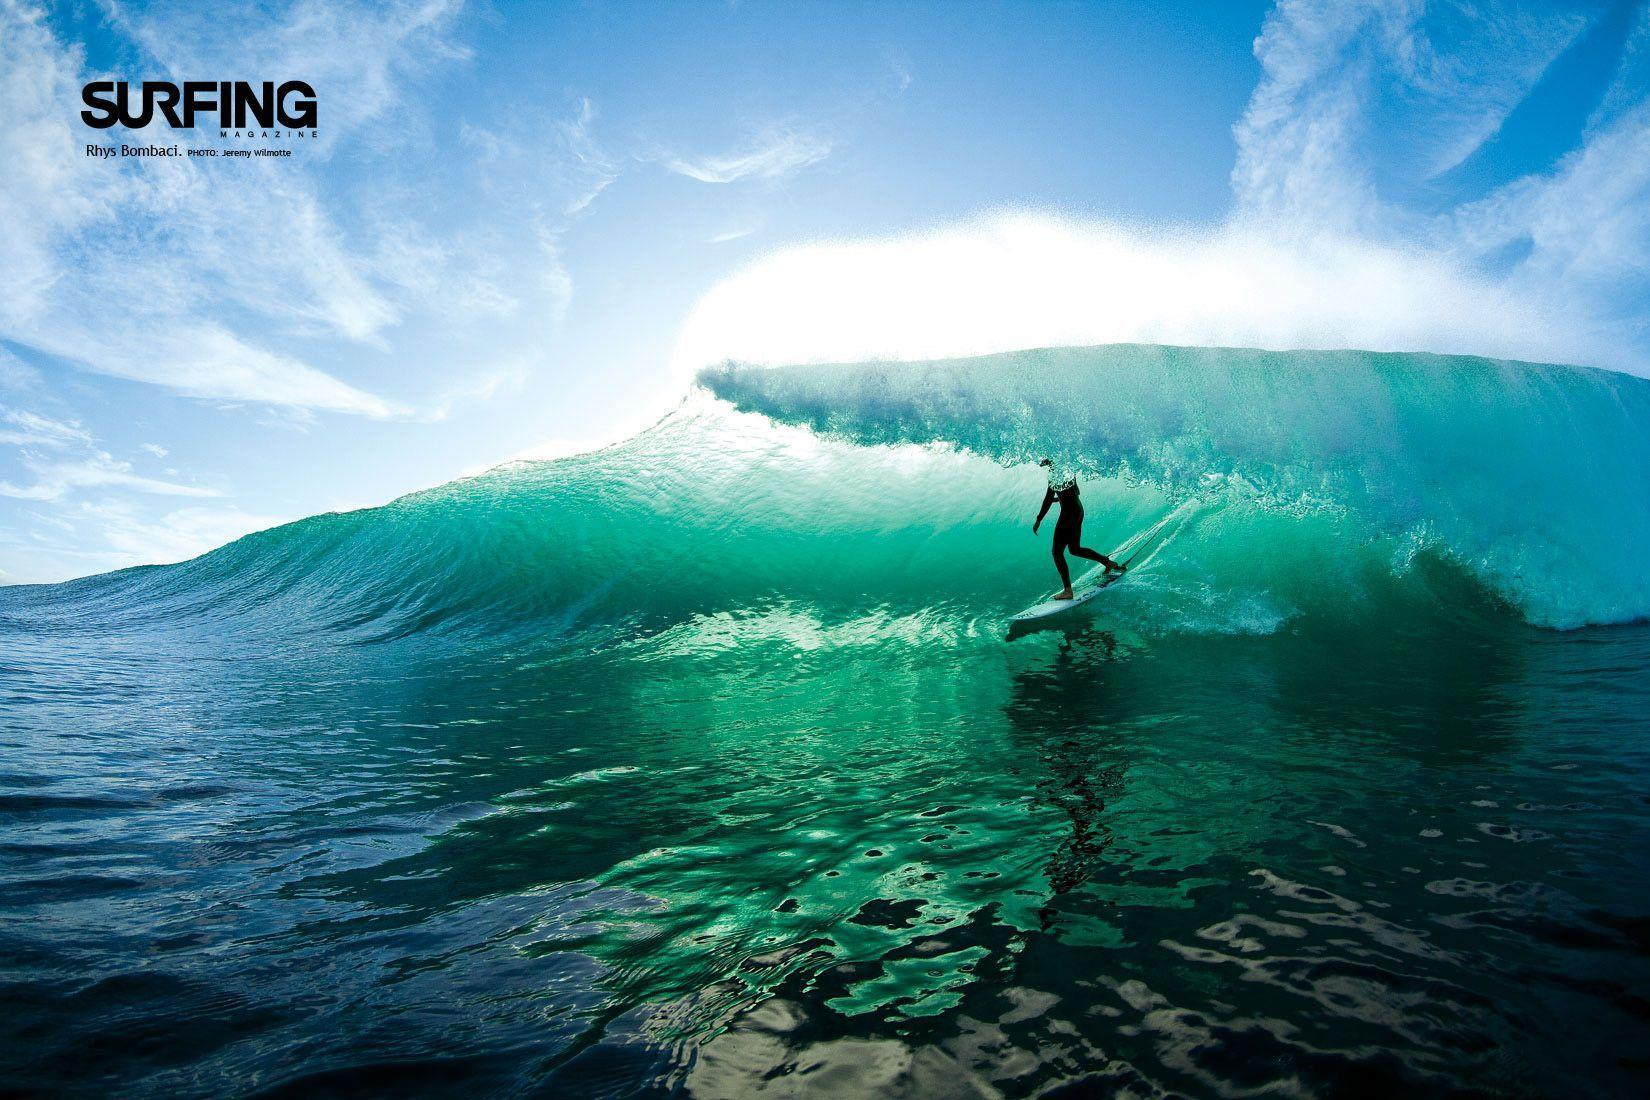 hd surfing surf big - photo #5